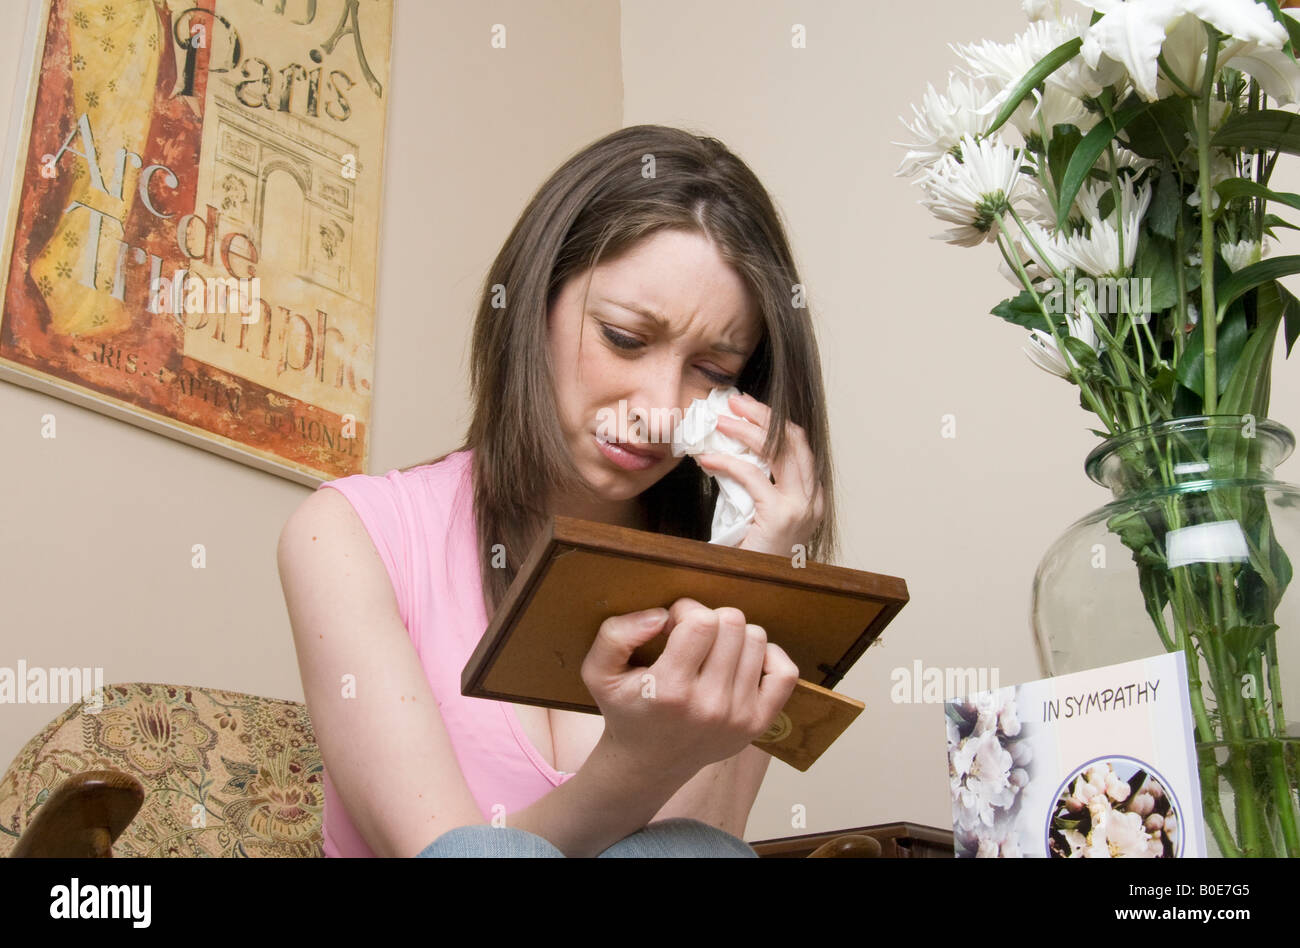 Young recently bereaved girl wiping away tears while looking at photo - Stock Image